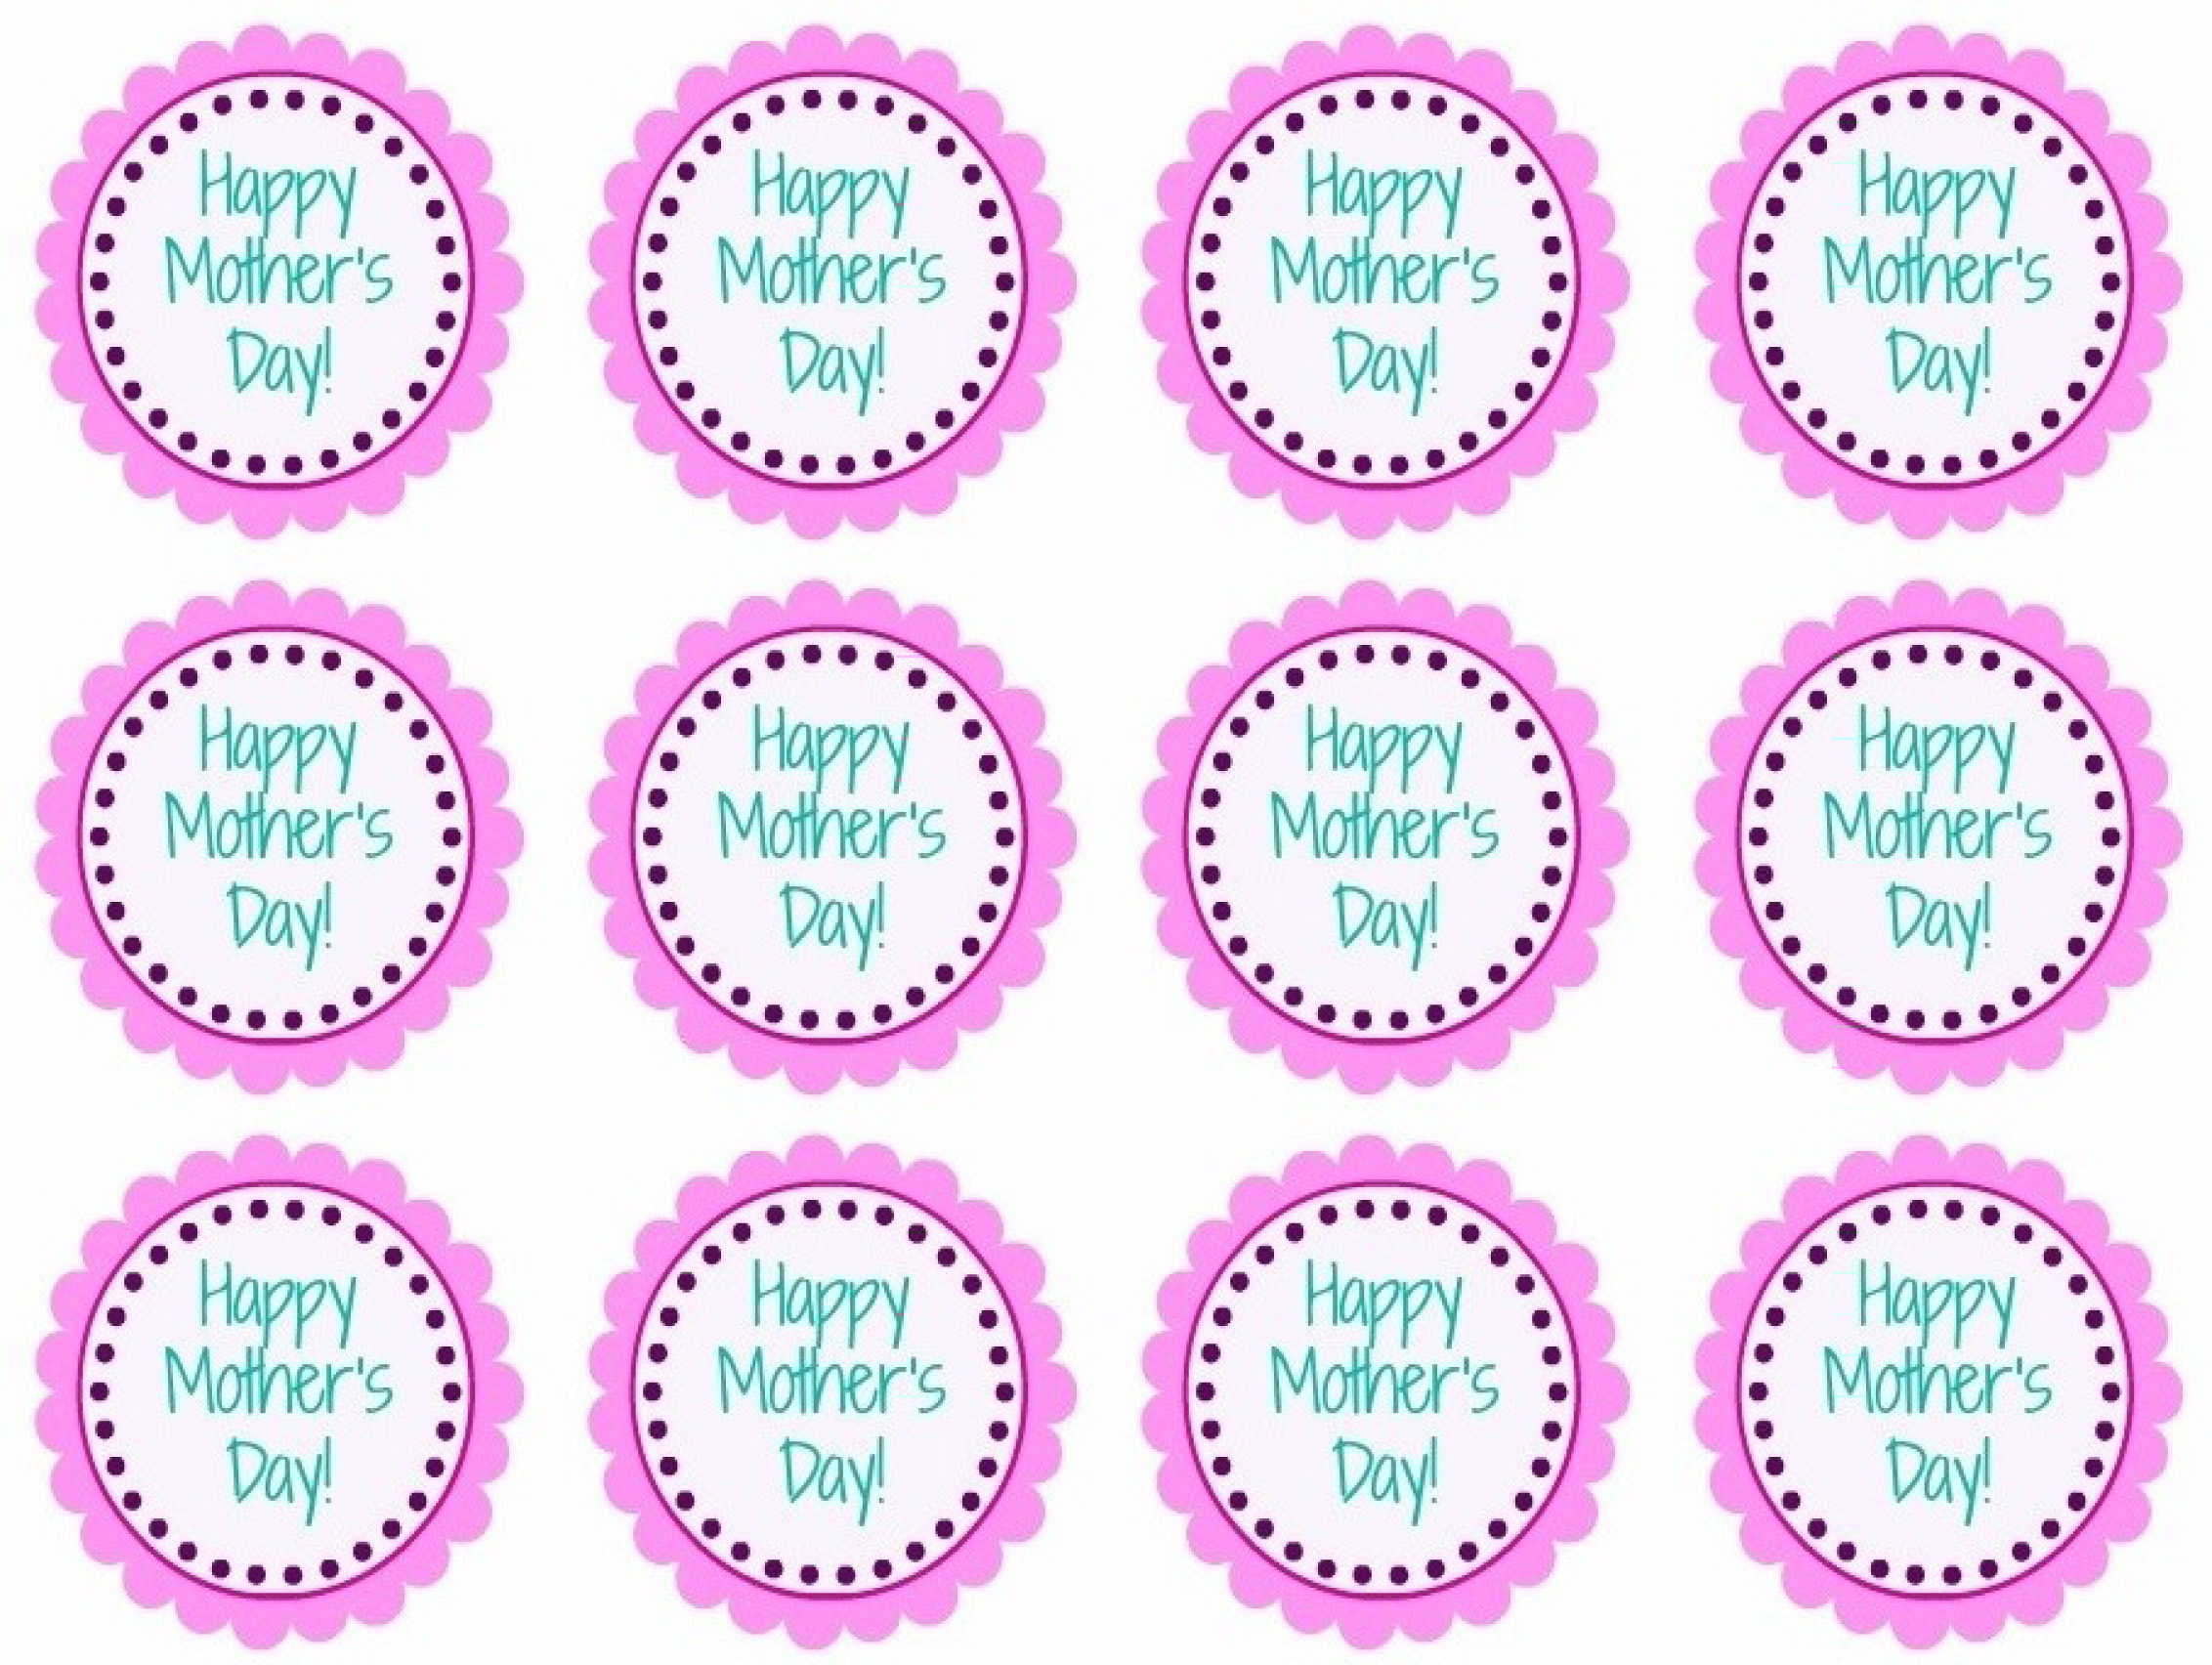 Free Printable Images Of Cupcakes : Free Printable Mother s Day Cupcake Toppers